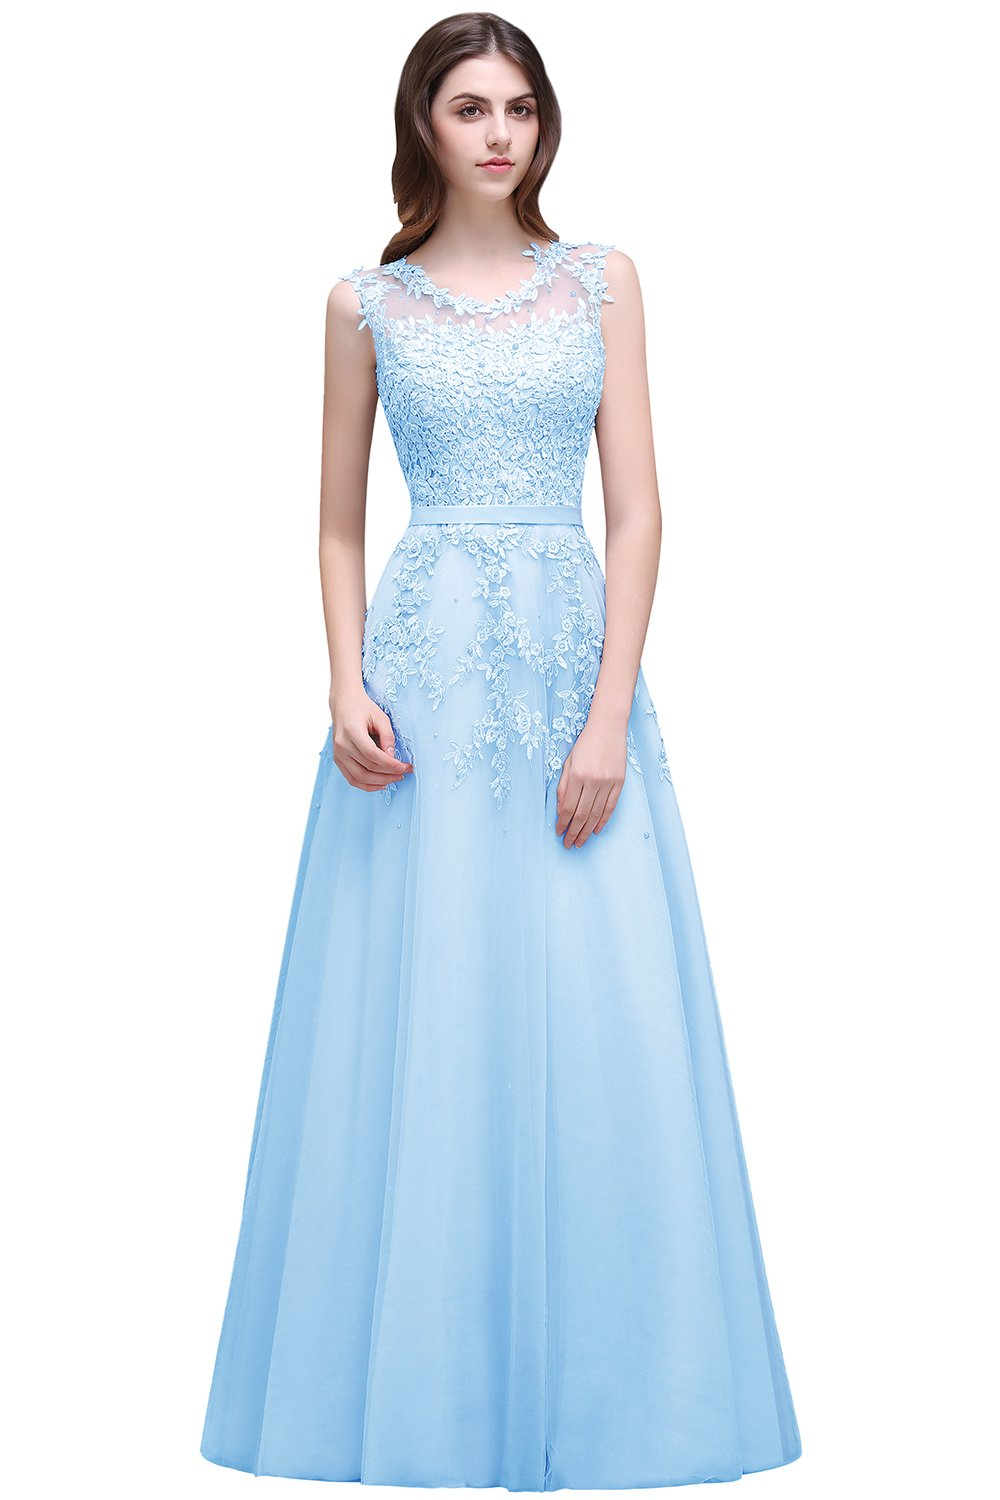 Babyonlinedress Sexy Sleeveless Lace Appliques Light Blue Cocktail Party Dress